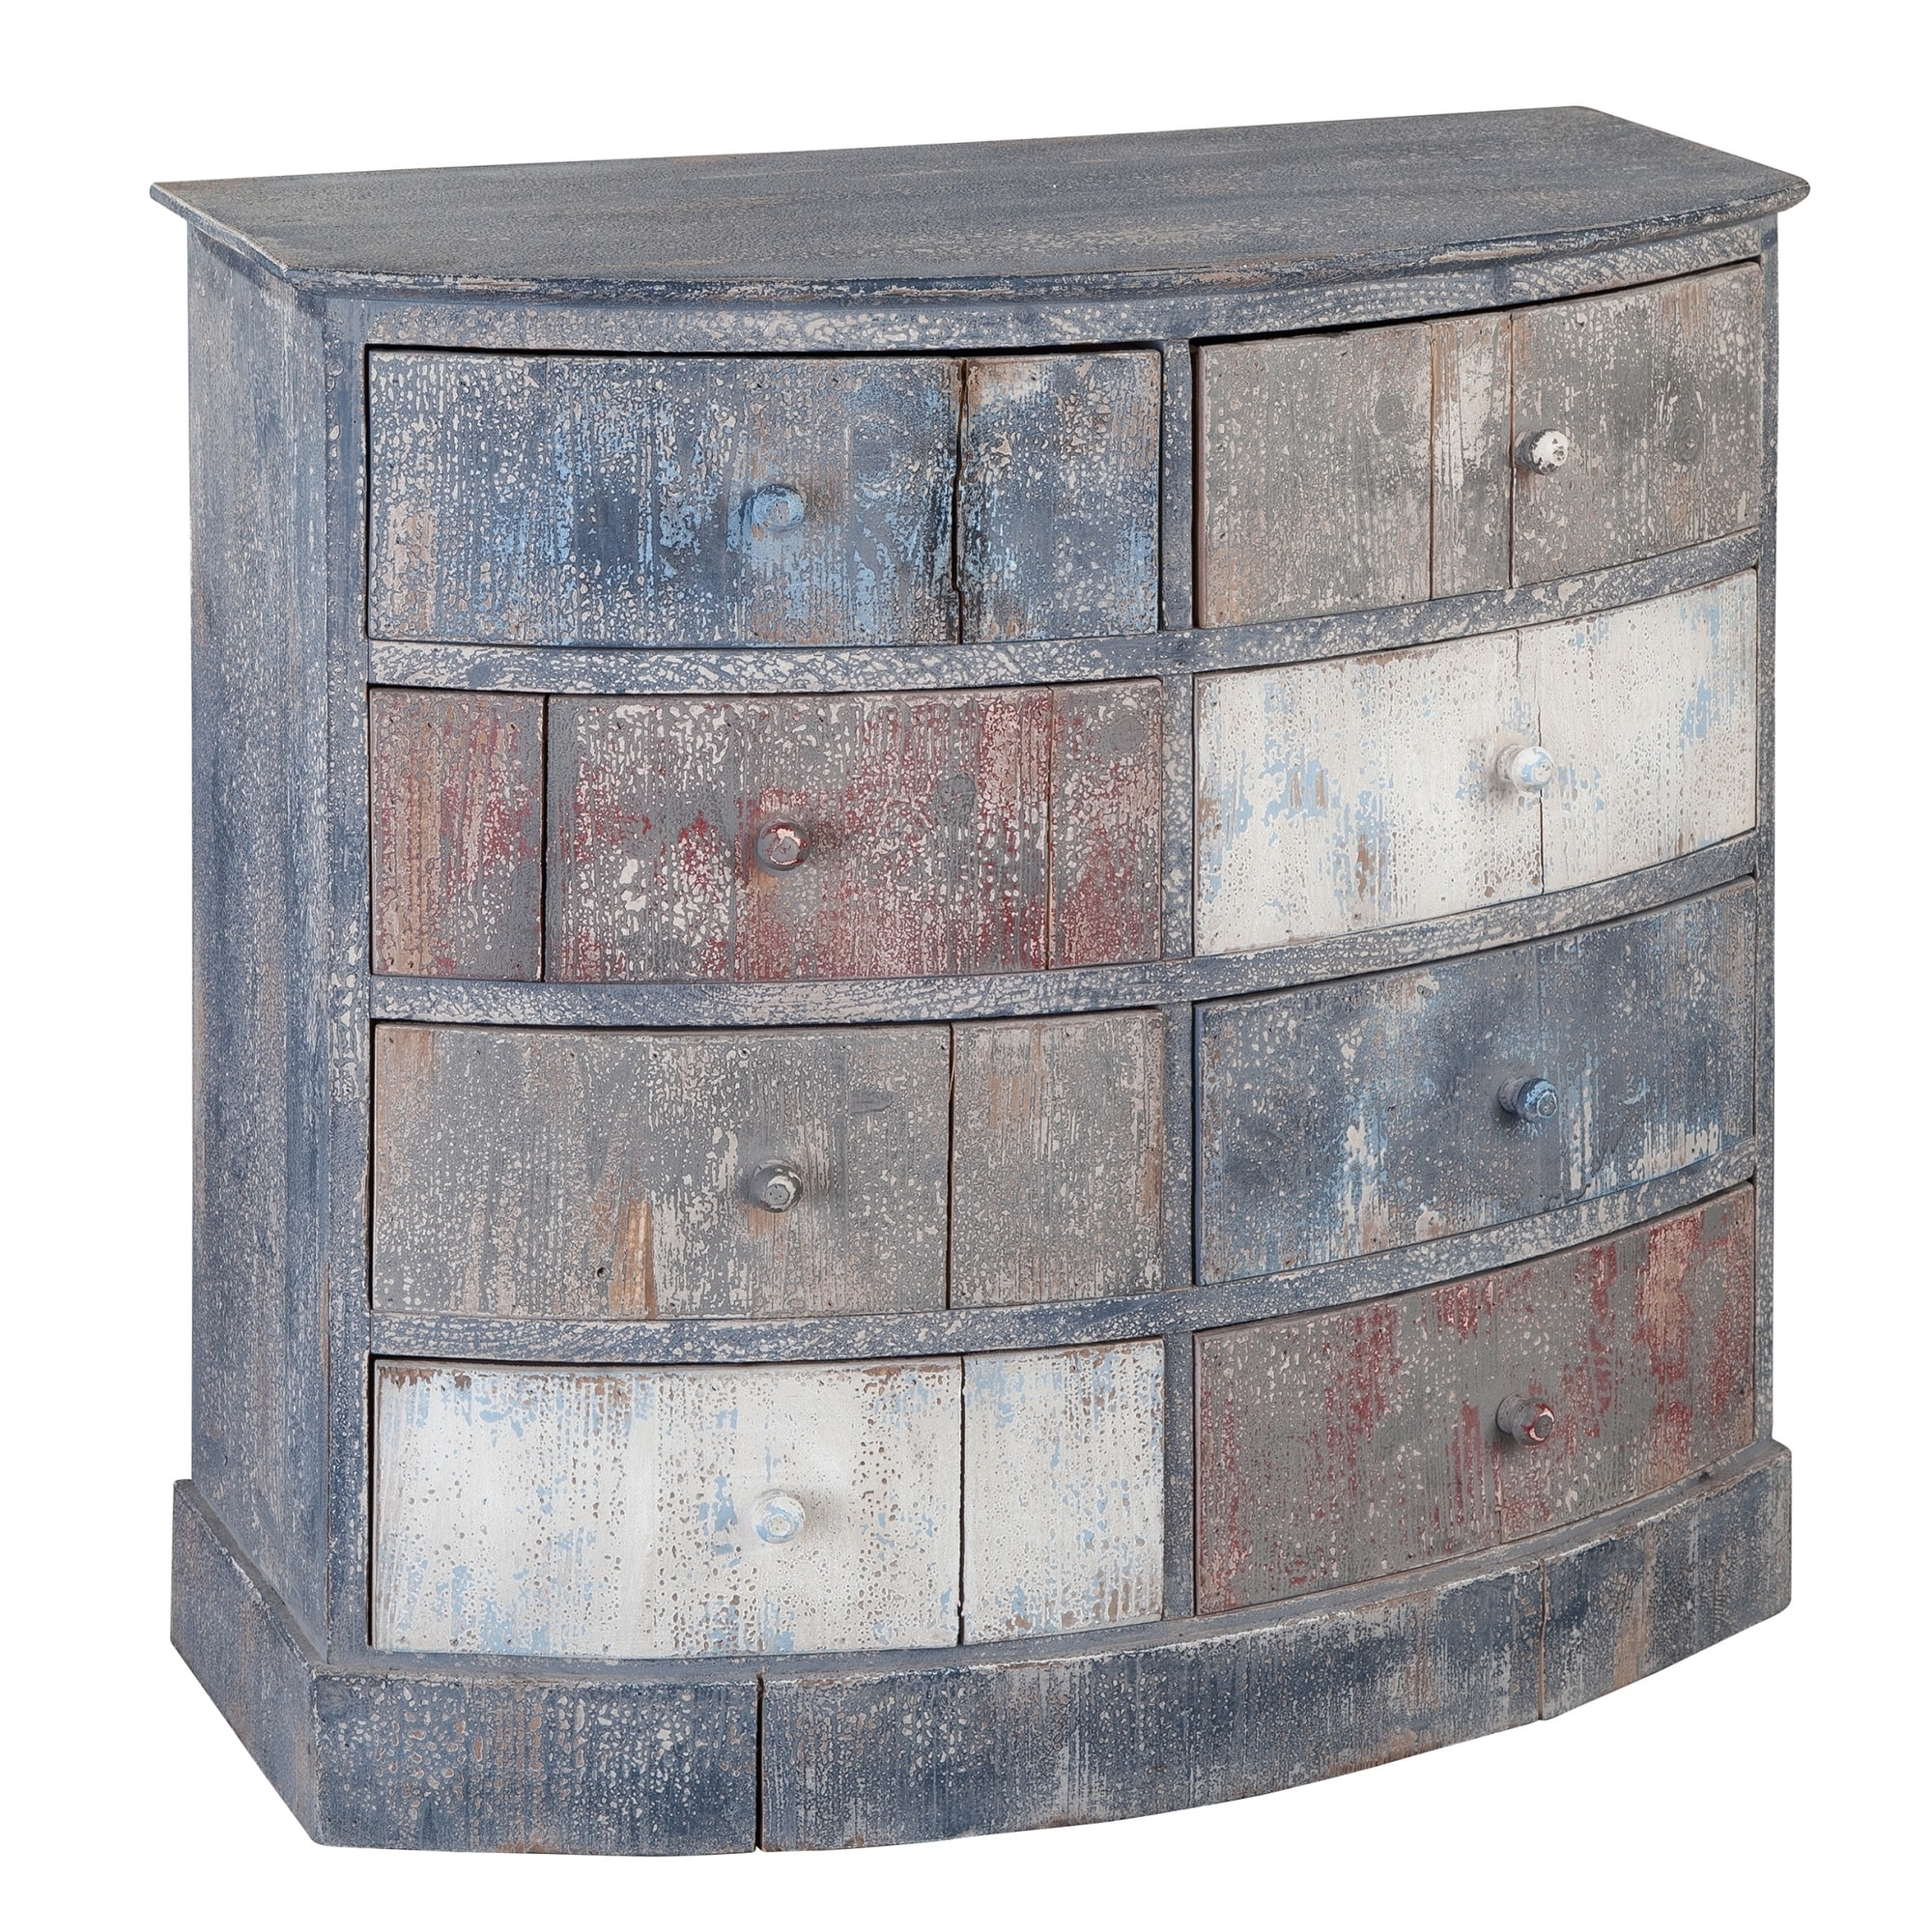 Hekman Accents Bow Front Rustic Industrial Antique Distressed Finish Small Hall Chest Dresser 8 Drawer Nightstand